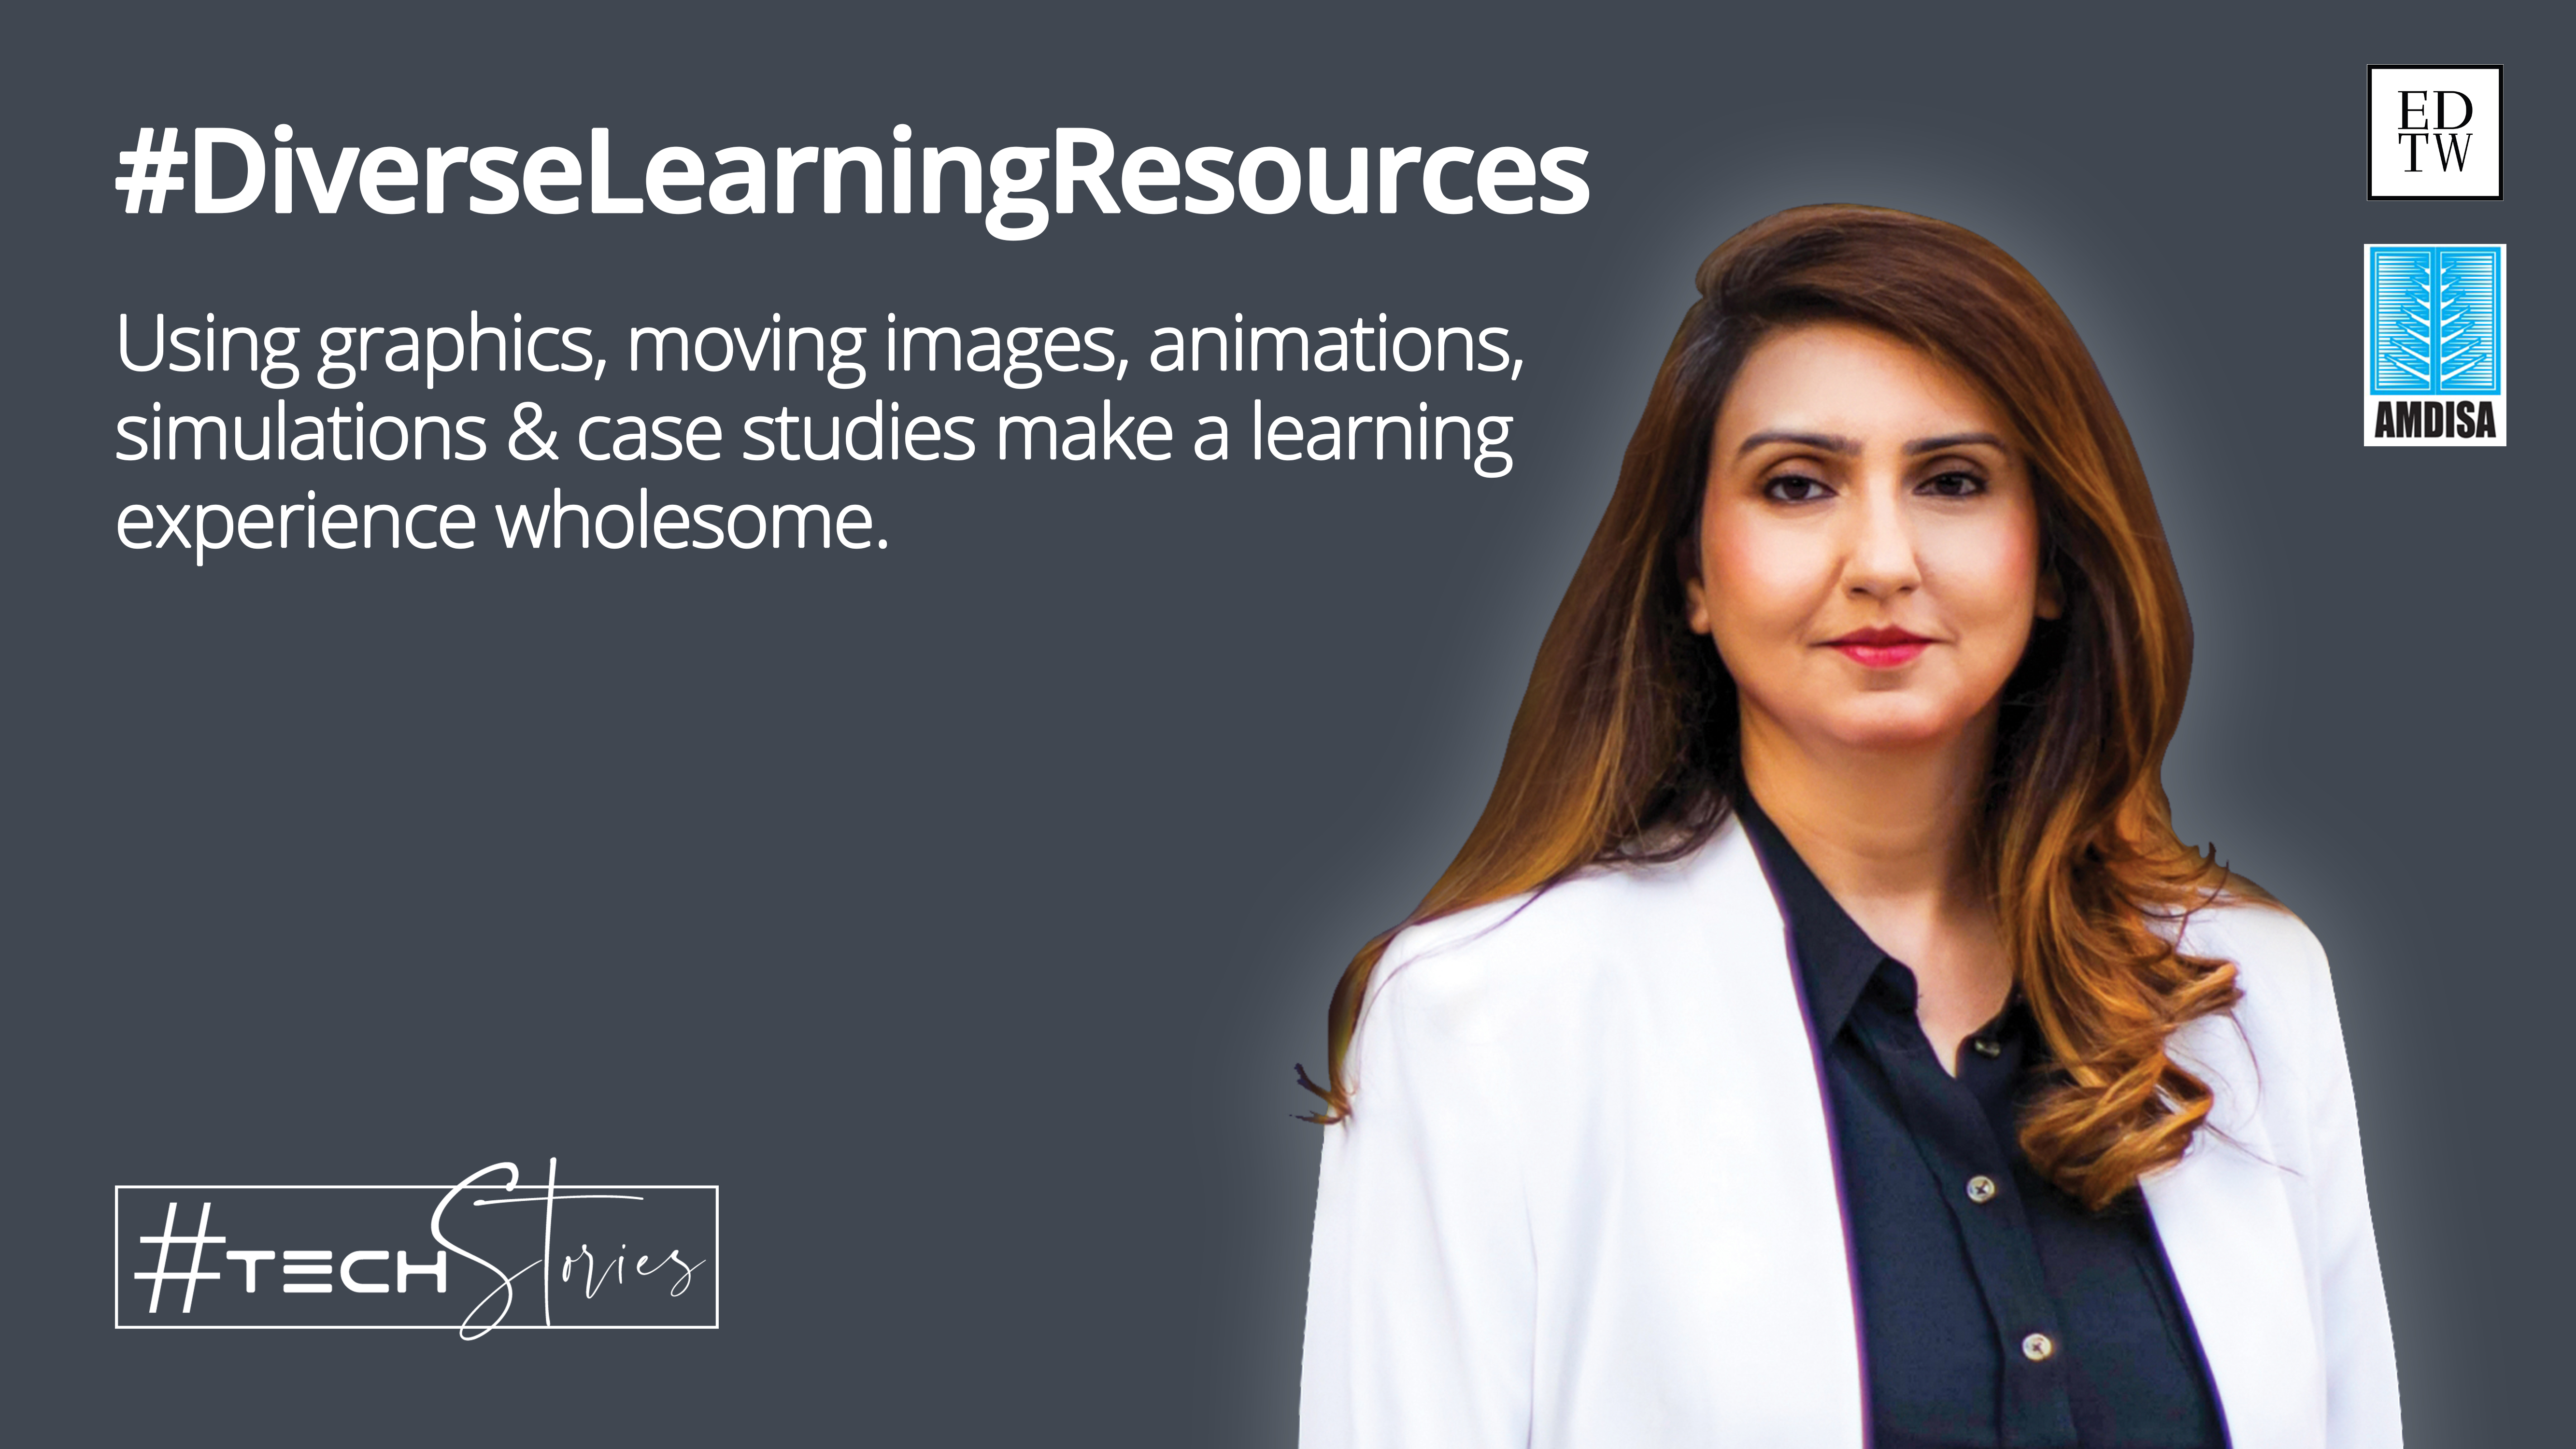 #DiverseLearningResources